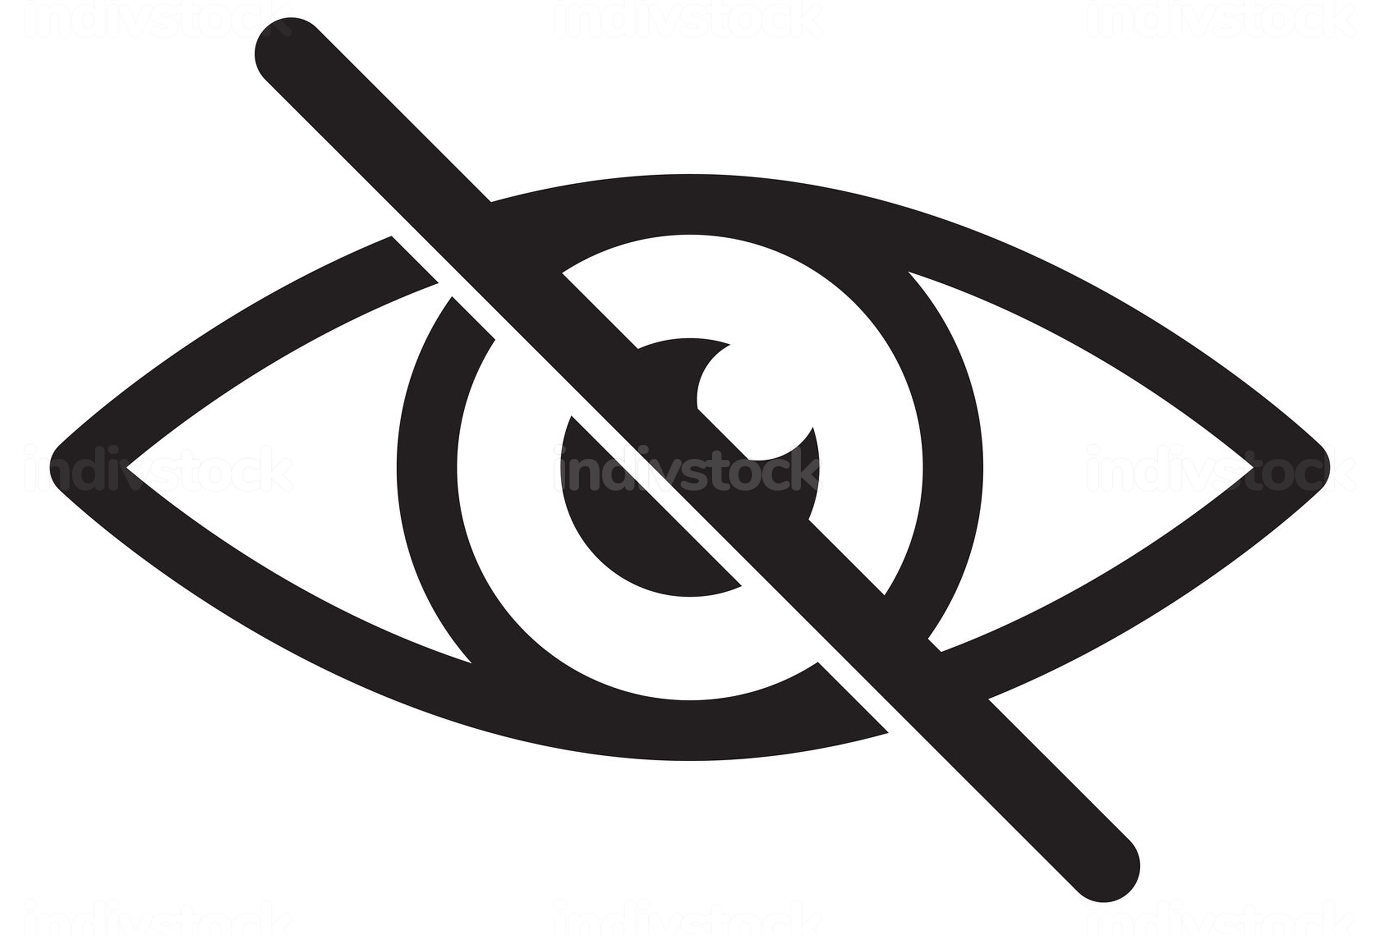 No eye. Black crossed eyeball icon. Concept of avoid look at hidden confidential secret like password. Vector symbol isolated on white background.